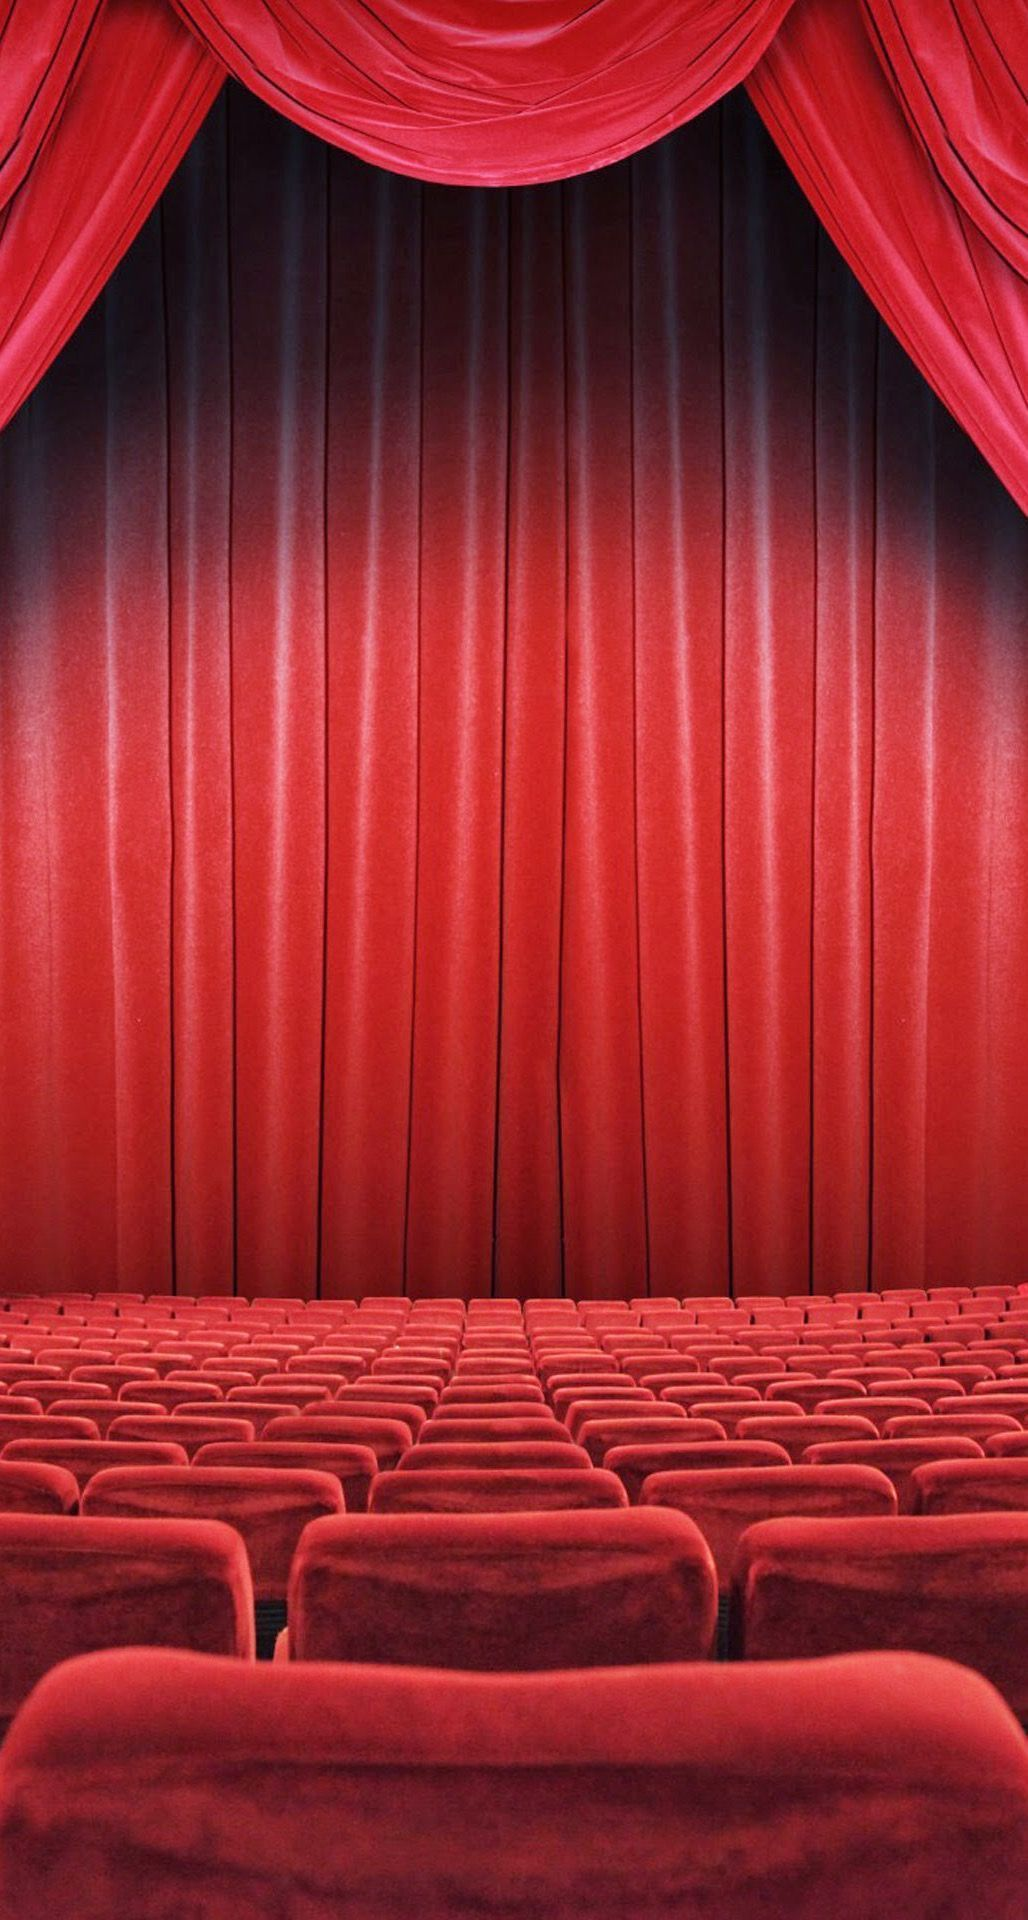 Theater Wallpaper 41 Movie Theater Wallpapers On In 2020 Red Curtains Movie Theater Theater Seating